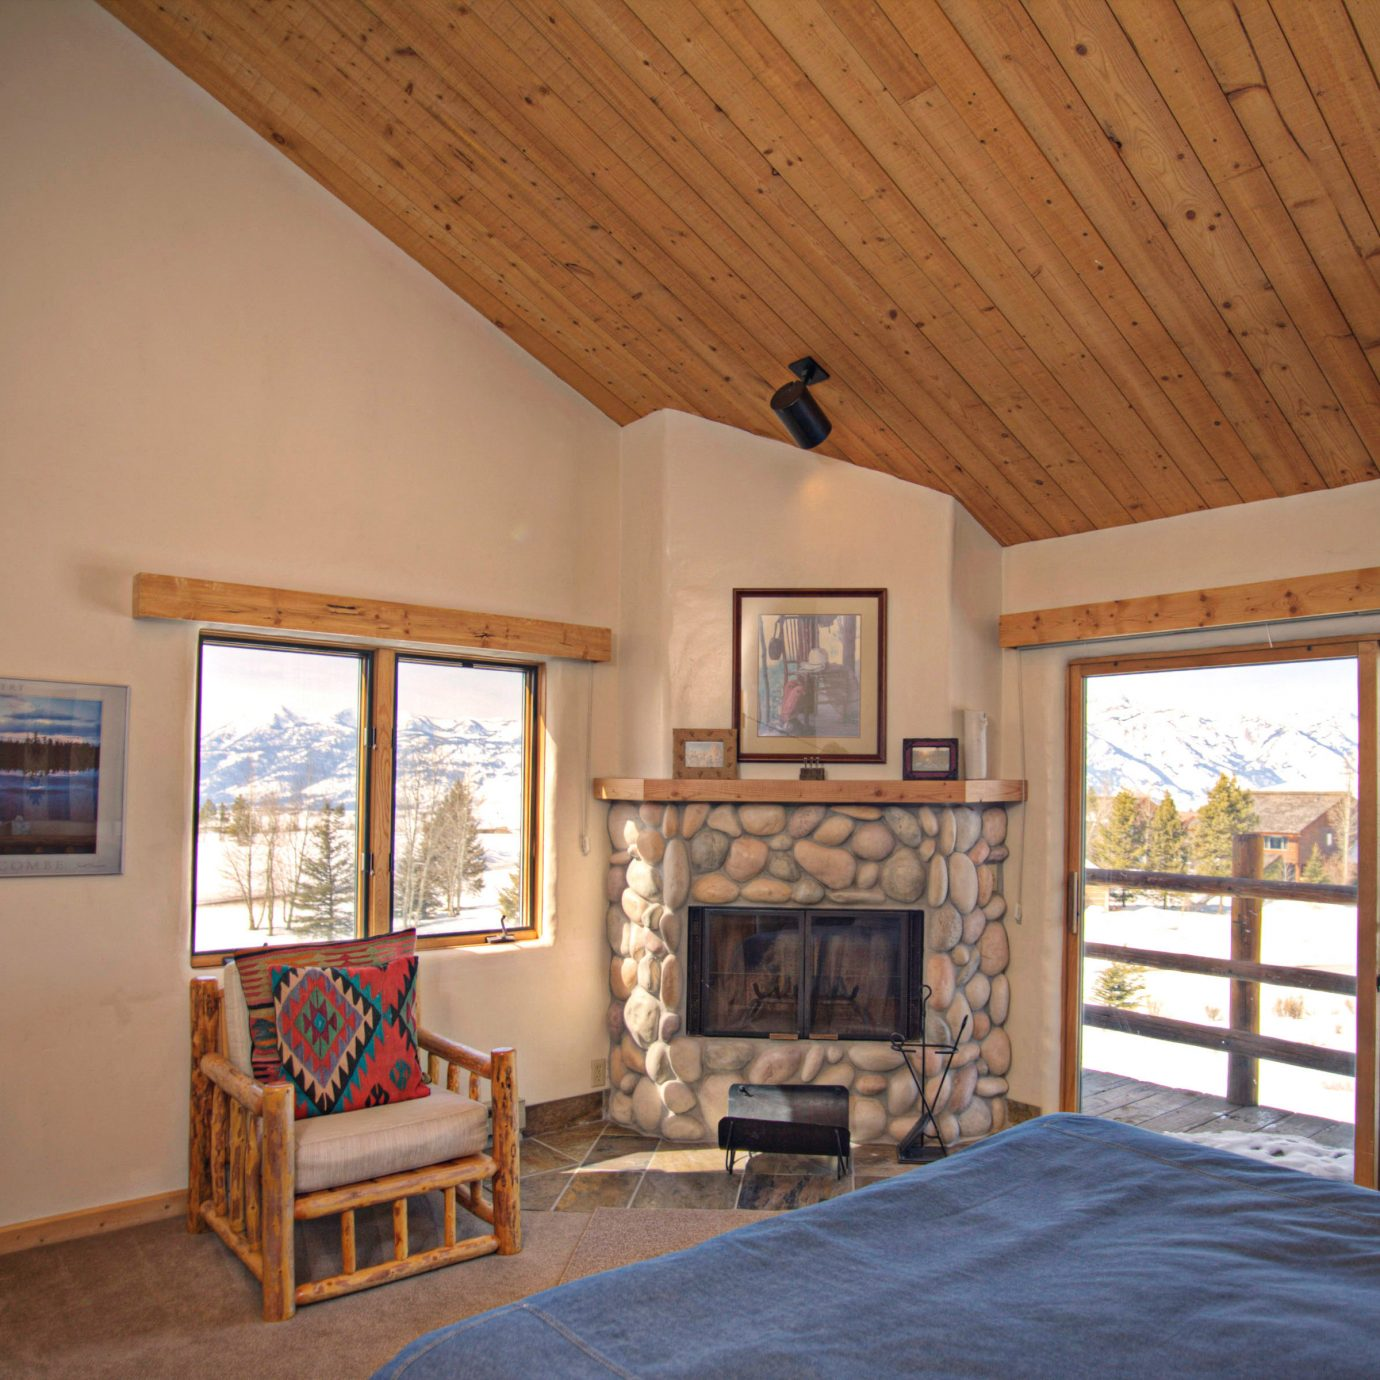 Bedroom Budget Country Family Fireplace Lodge property house home living room cottage hardwood farmhouse Villa